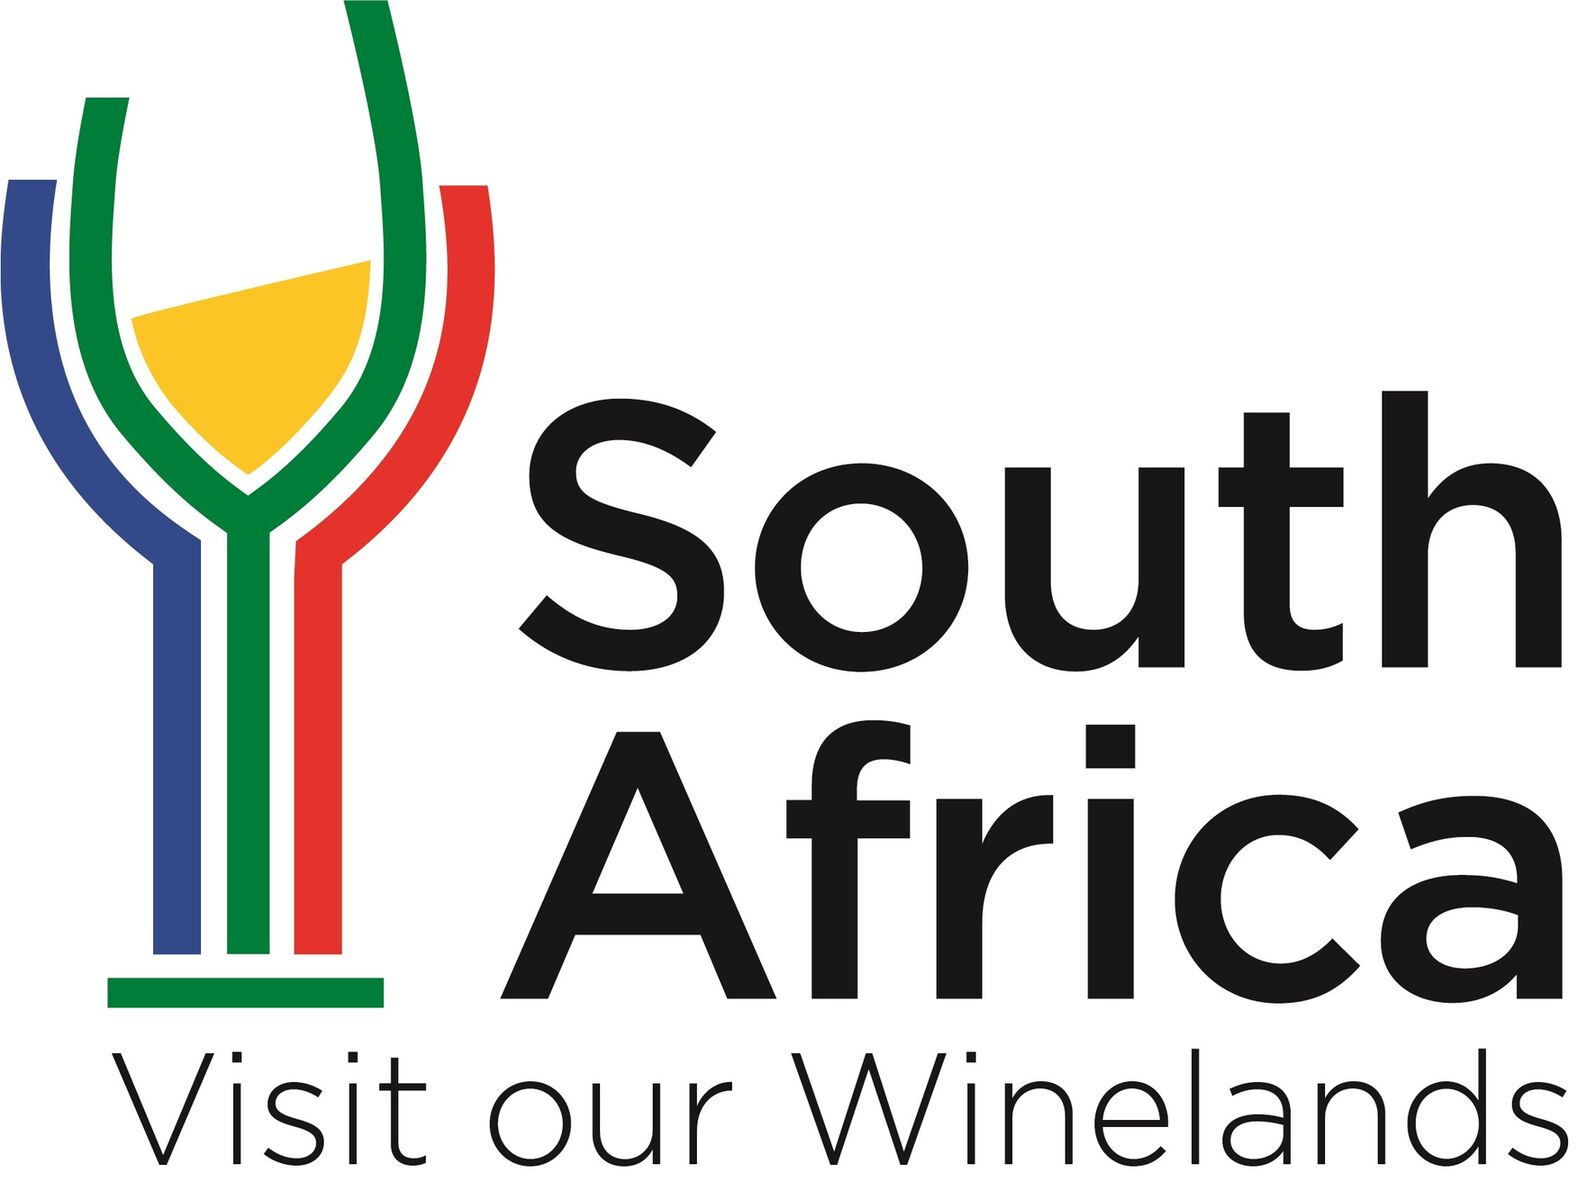 Visit Winelands Logo